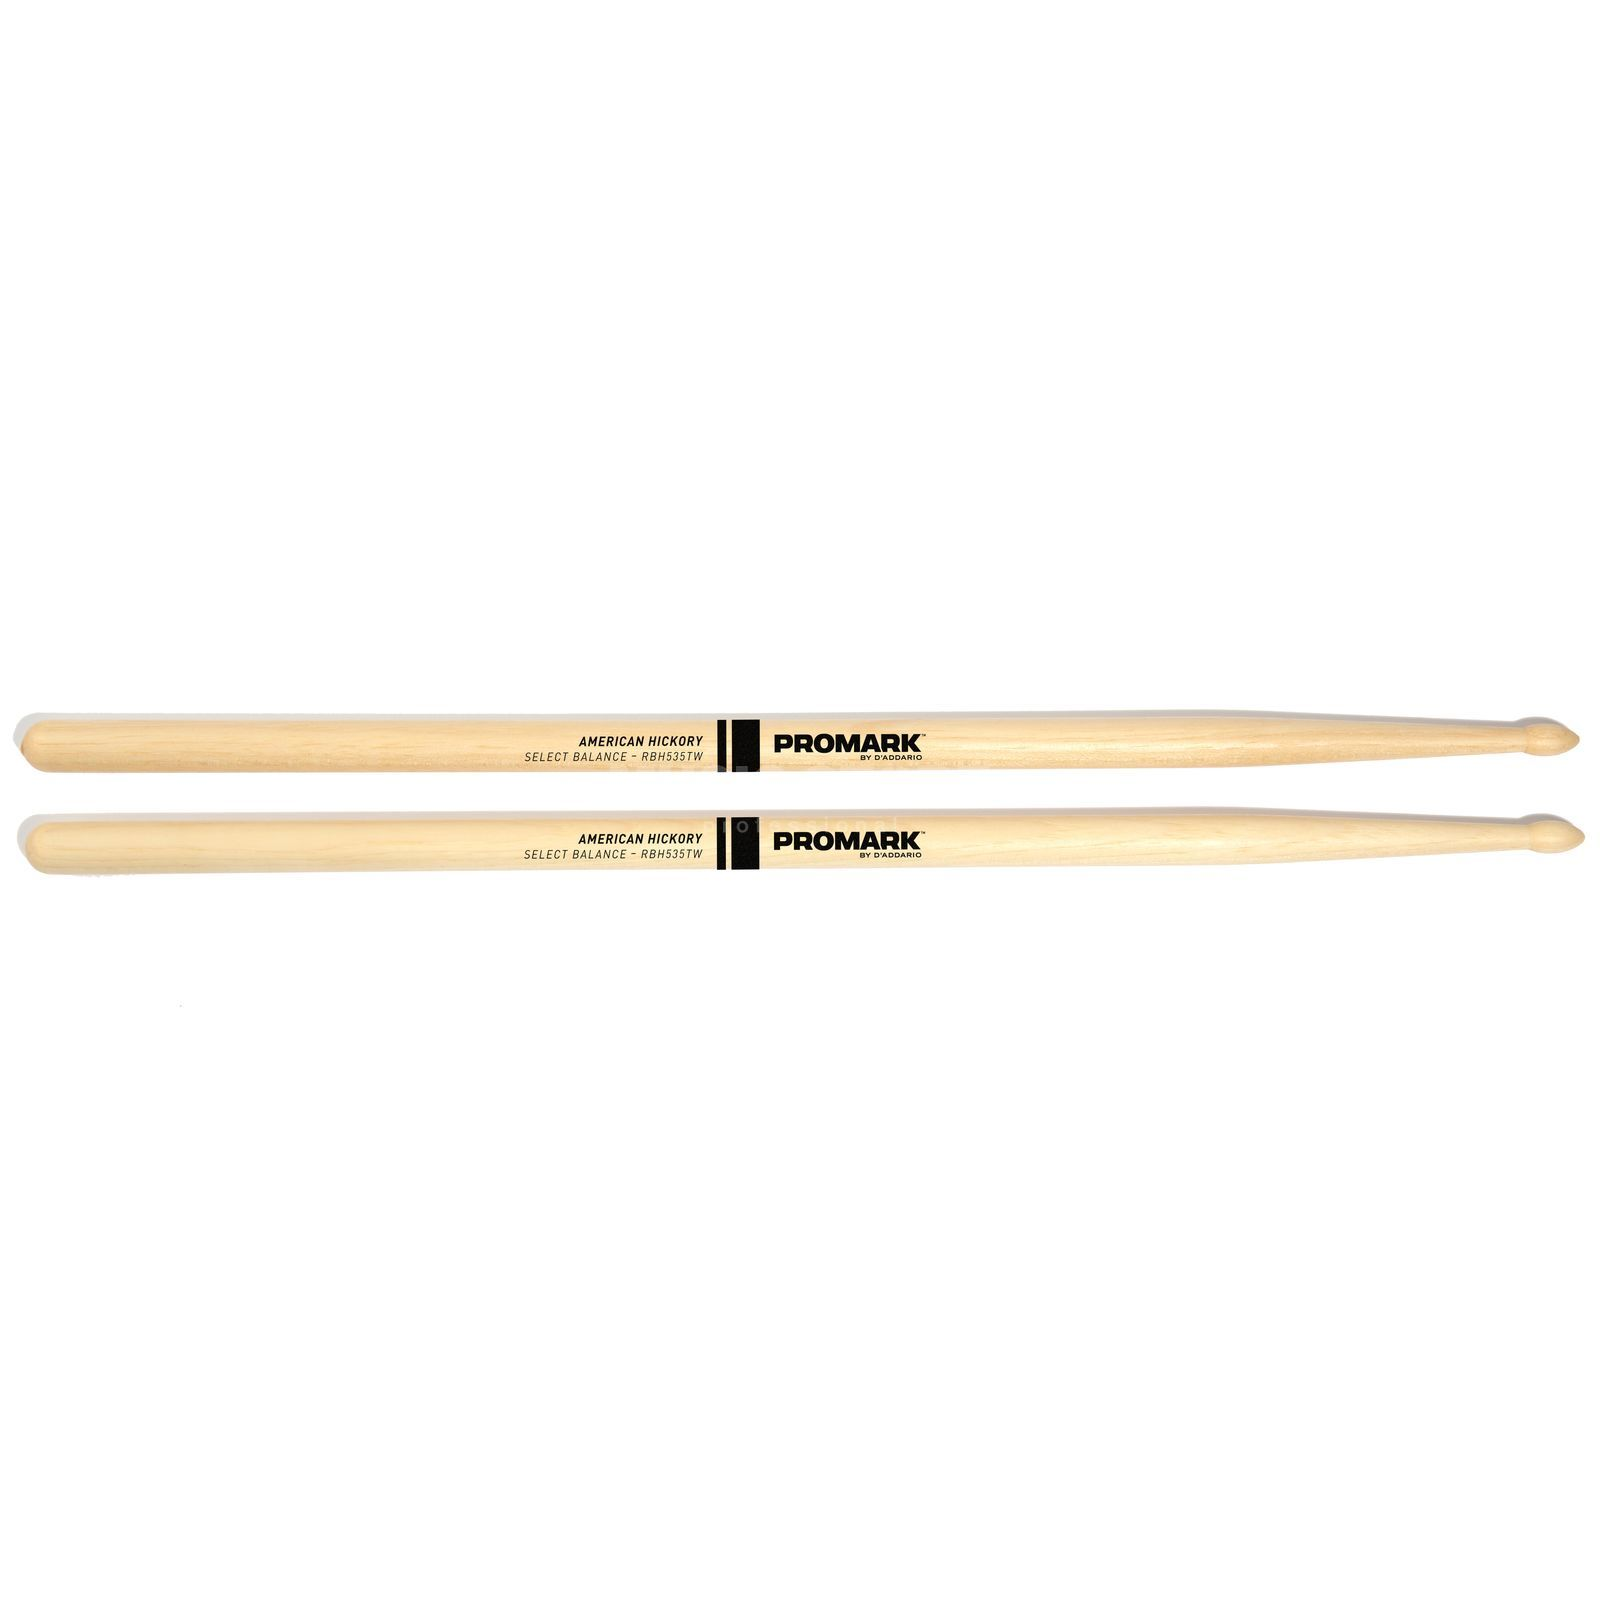 PRO-MARK Select Balance Sticks RBH535TW Rebound Balance, Wood Tip Produktbild